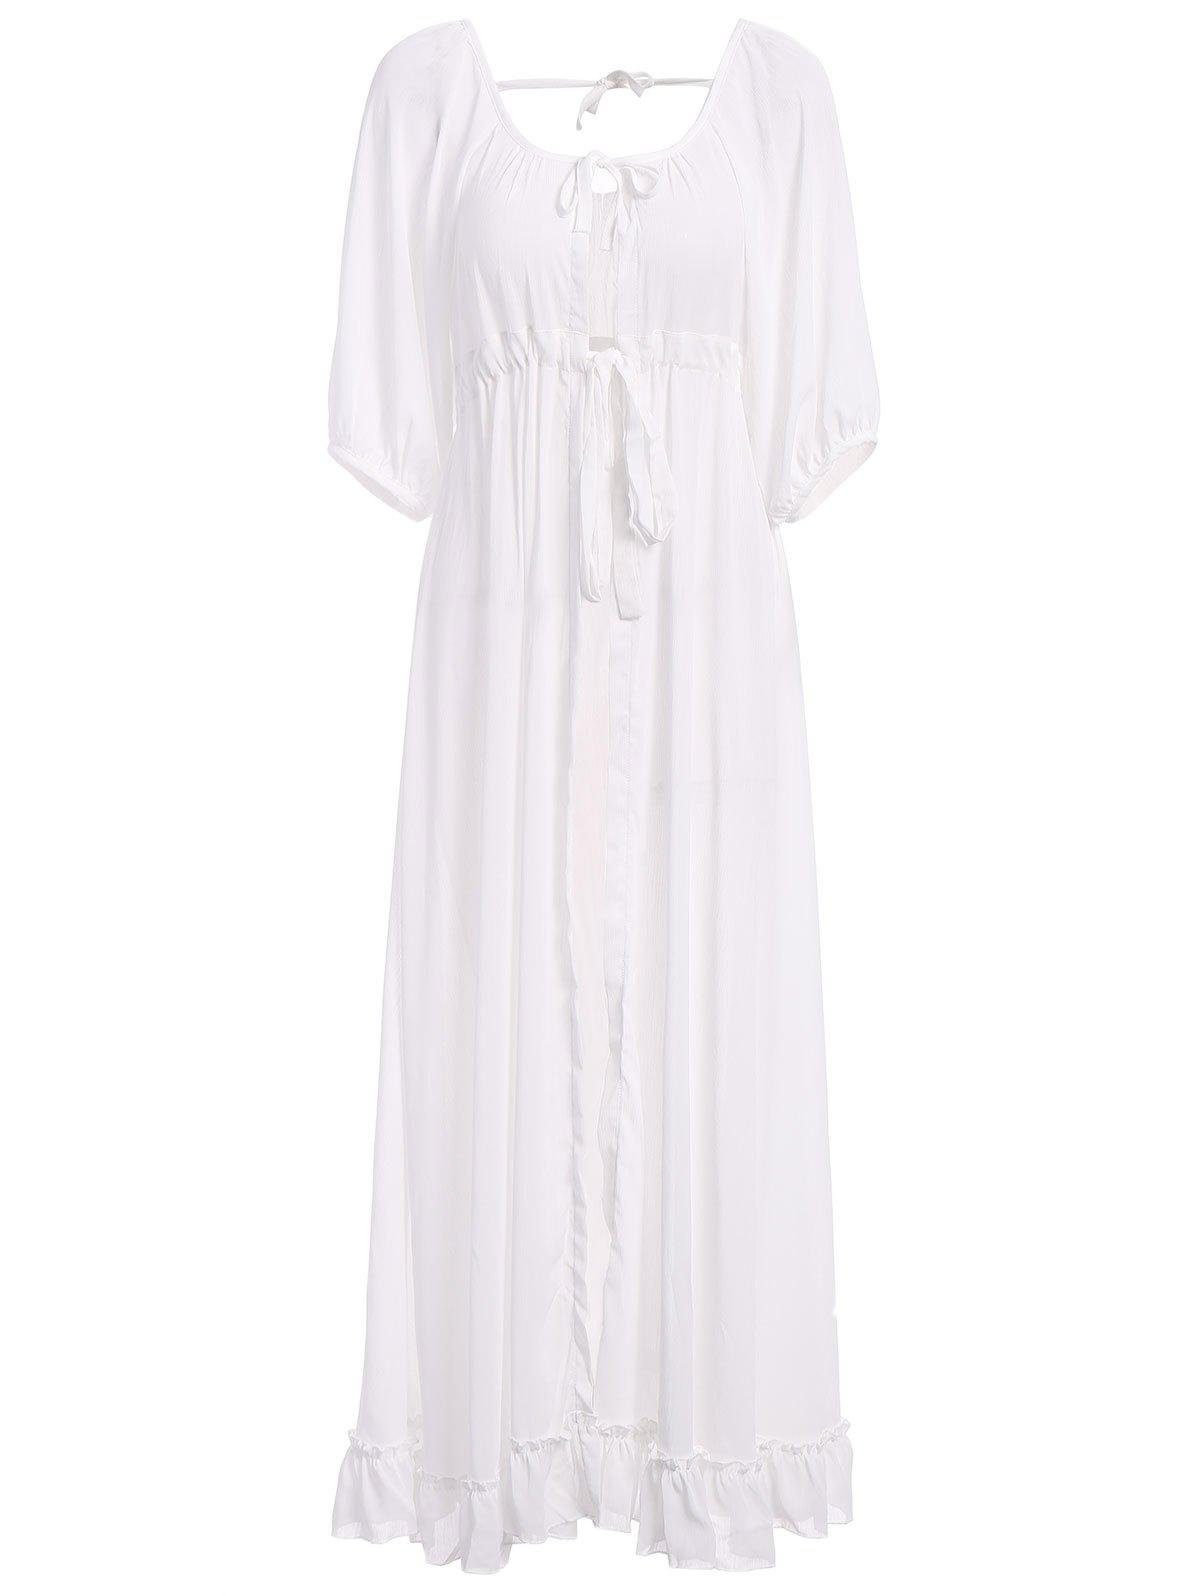 Stylish Women's Scoop Neck 1/2 Sleeve Drawstring Cover-Up Dress - M WHITE